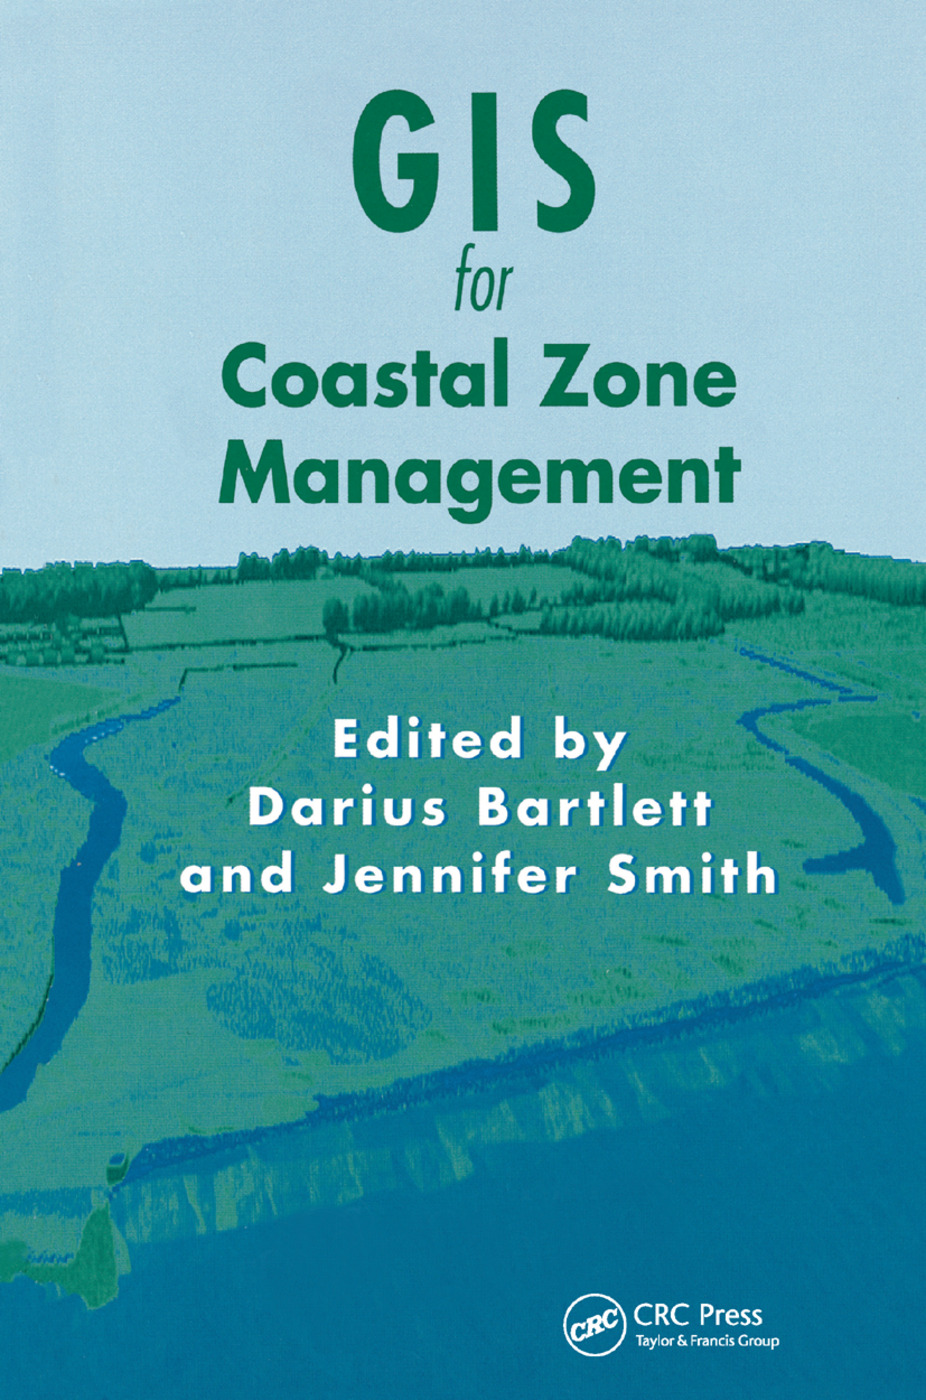 GIS for Coastal Zone Management book cover